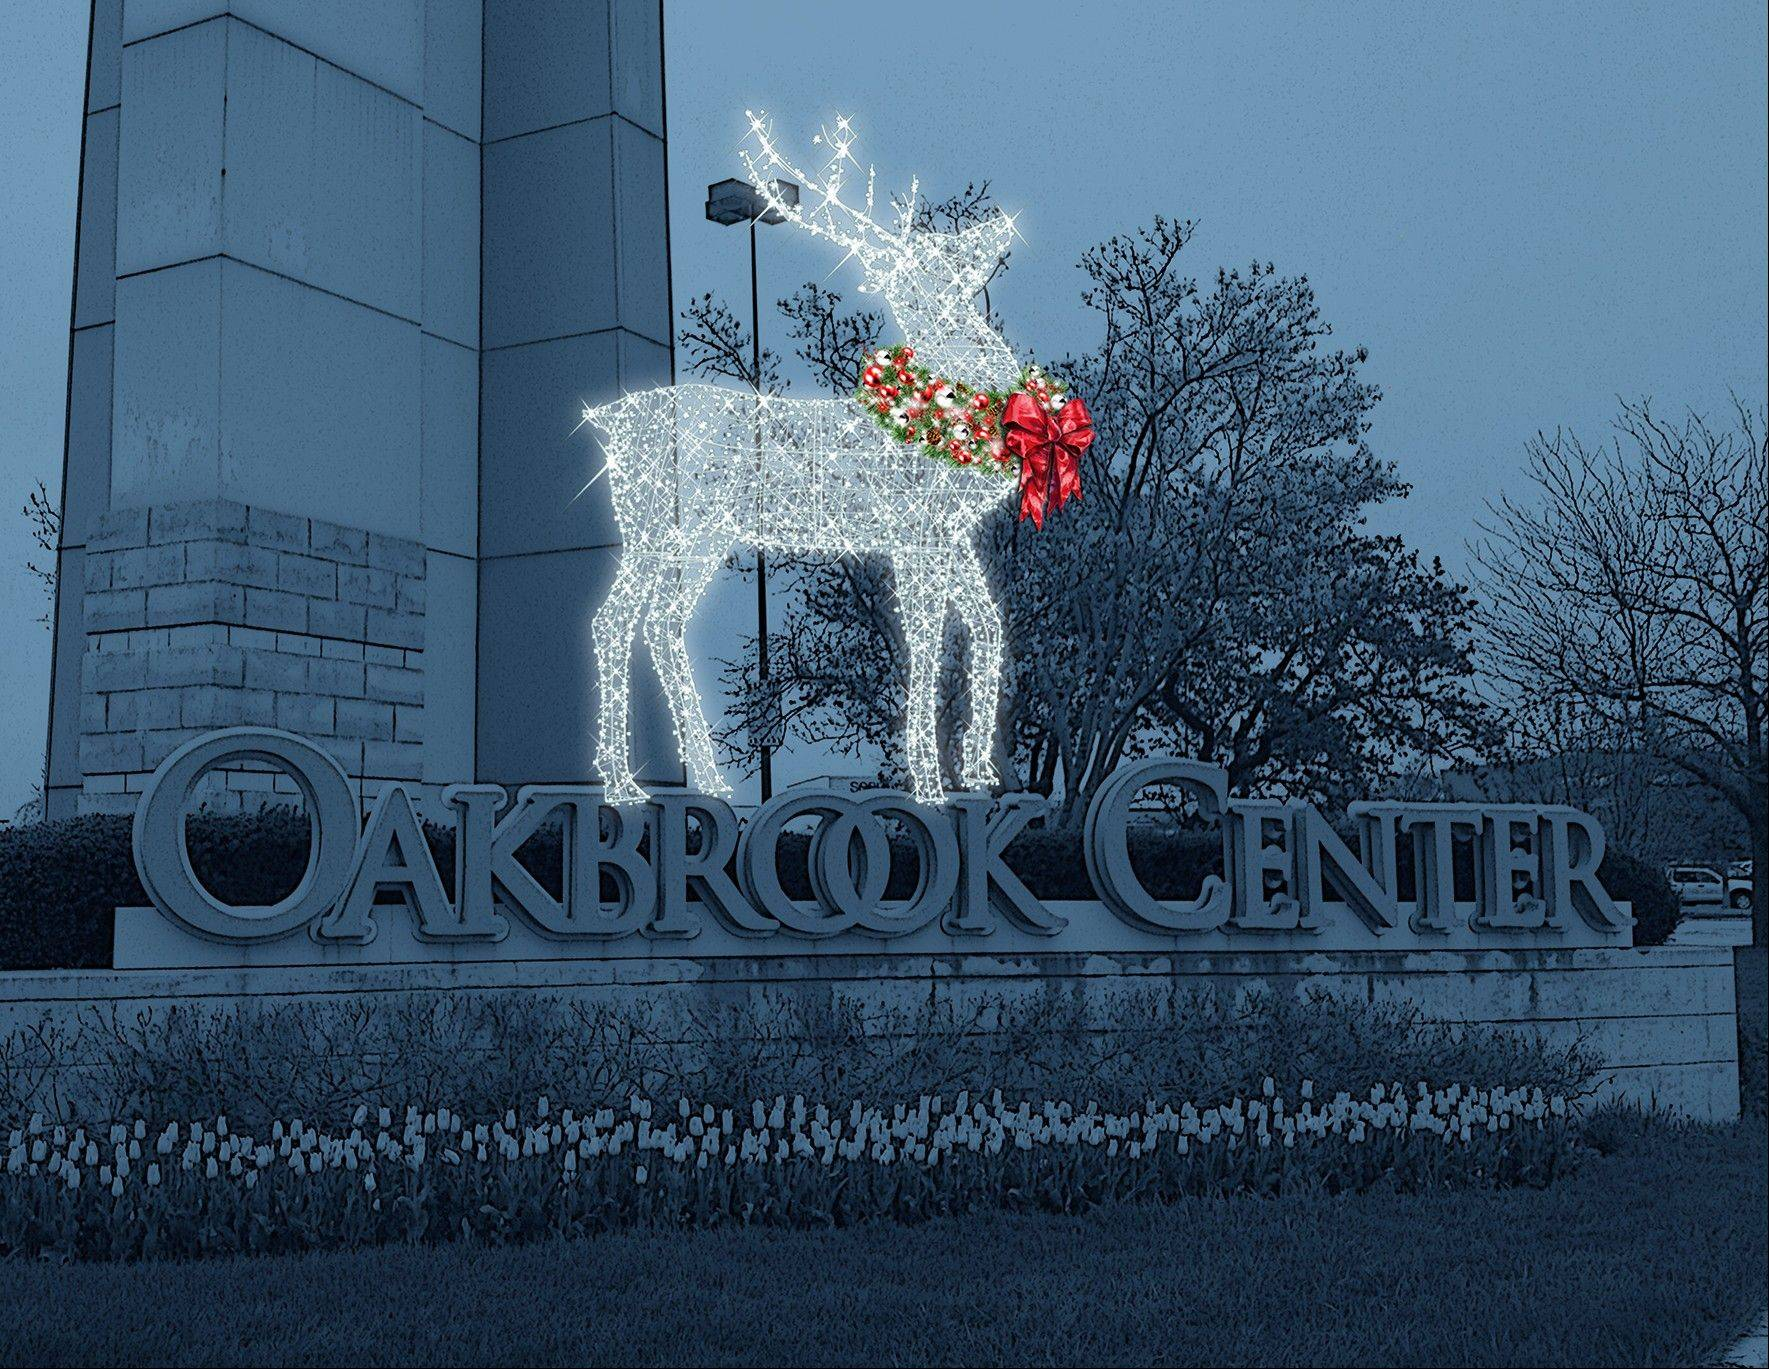 "Oakbrook Center holds a Holiday Spectacular on Nov. 22 to celebrate the completion of a two-year renovation project. The event includes an Illuminated Lantern Night Processional accompanied by jingling ""Bell and Antler"" reindeer characters, and the opportunity to have a photo taken with a live reindeer."